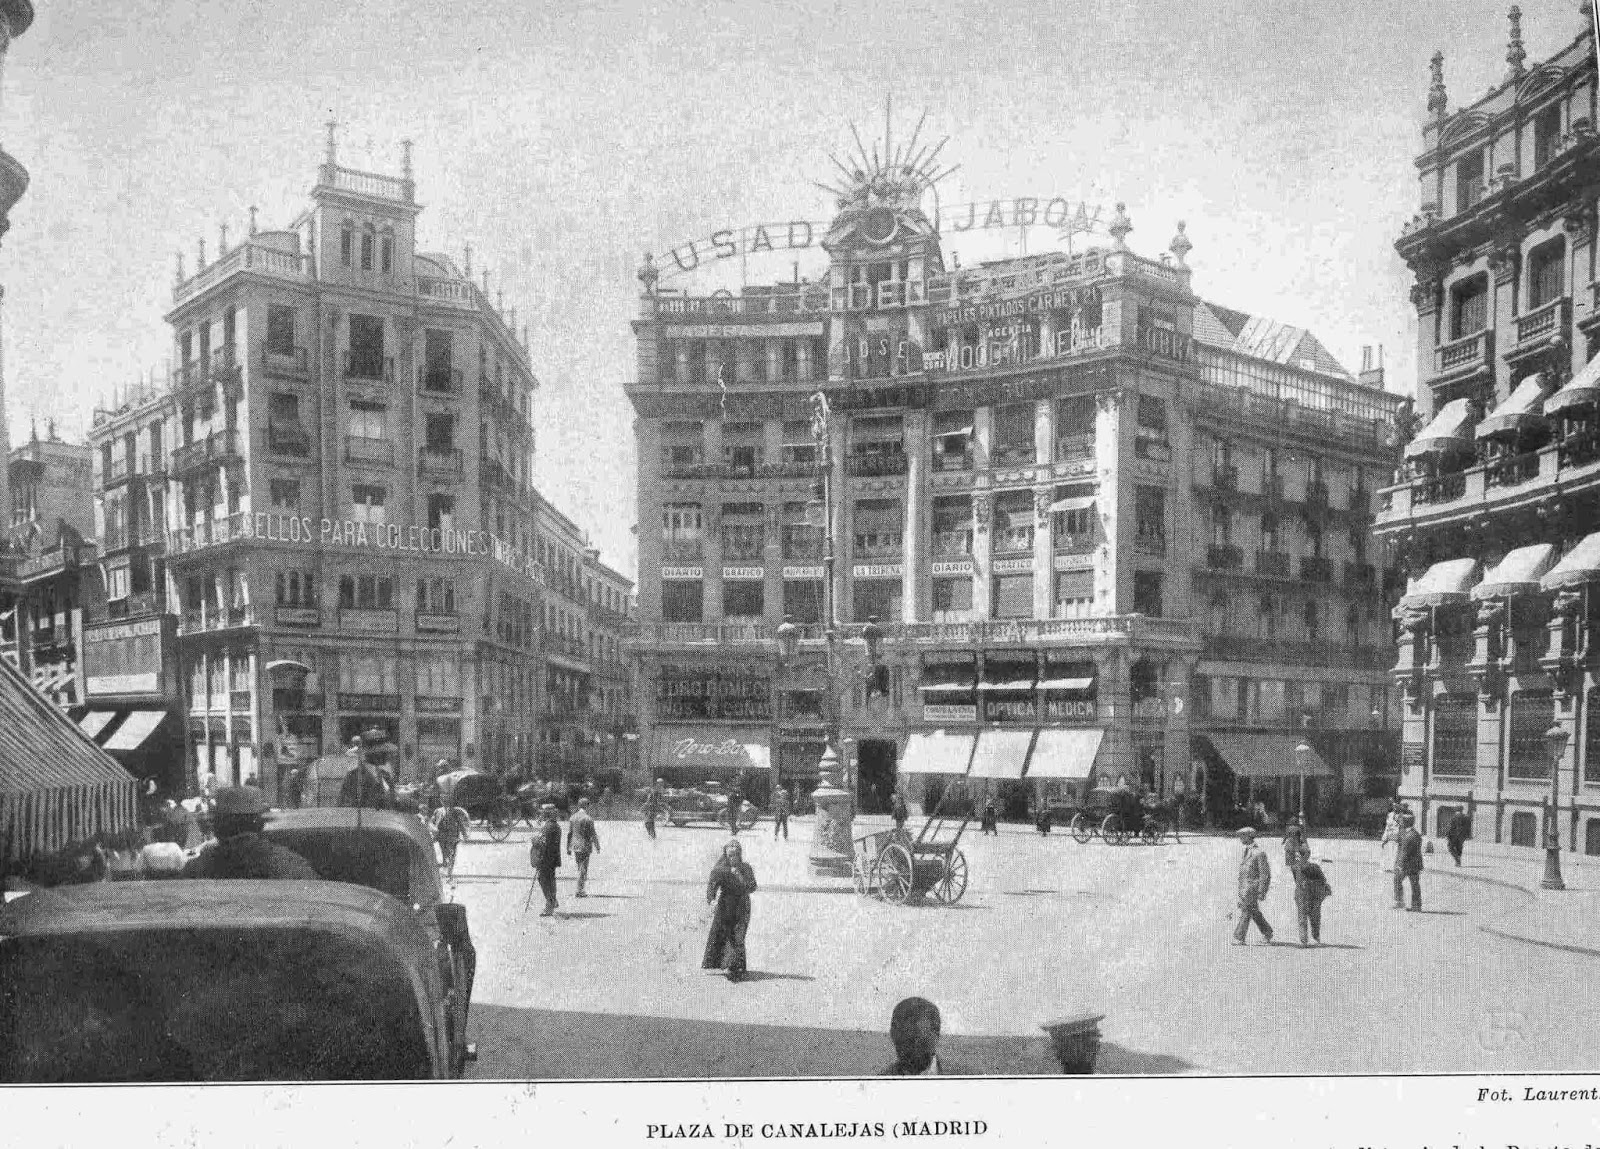 Plaza de Canalejas, Jean Laurent, Madrid